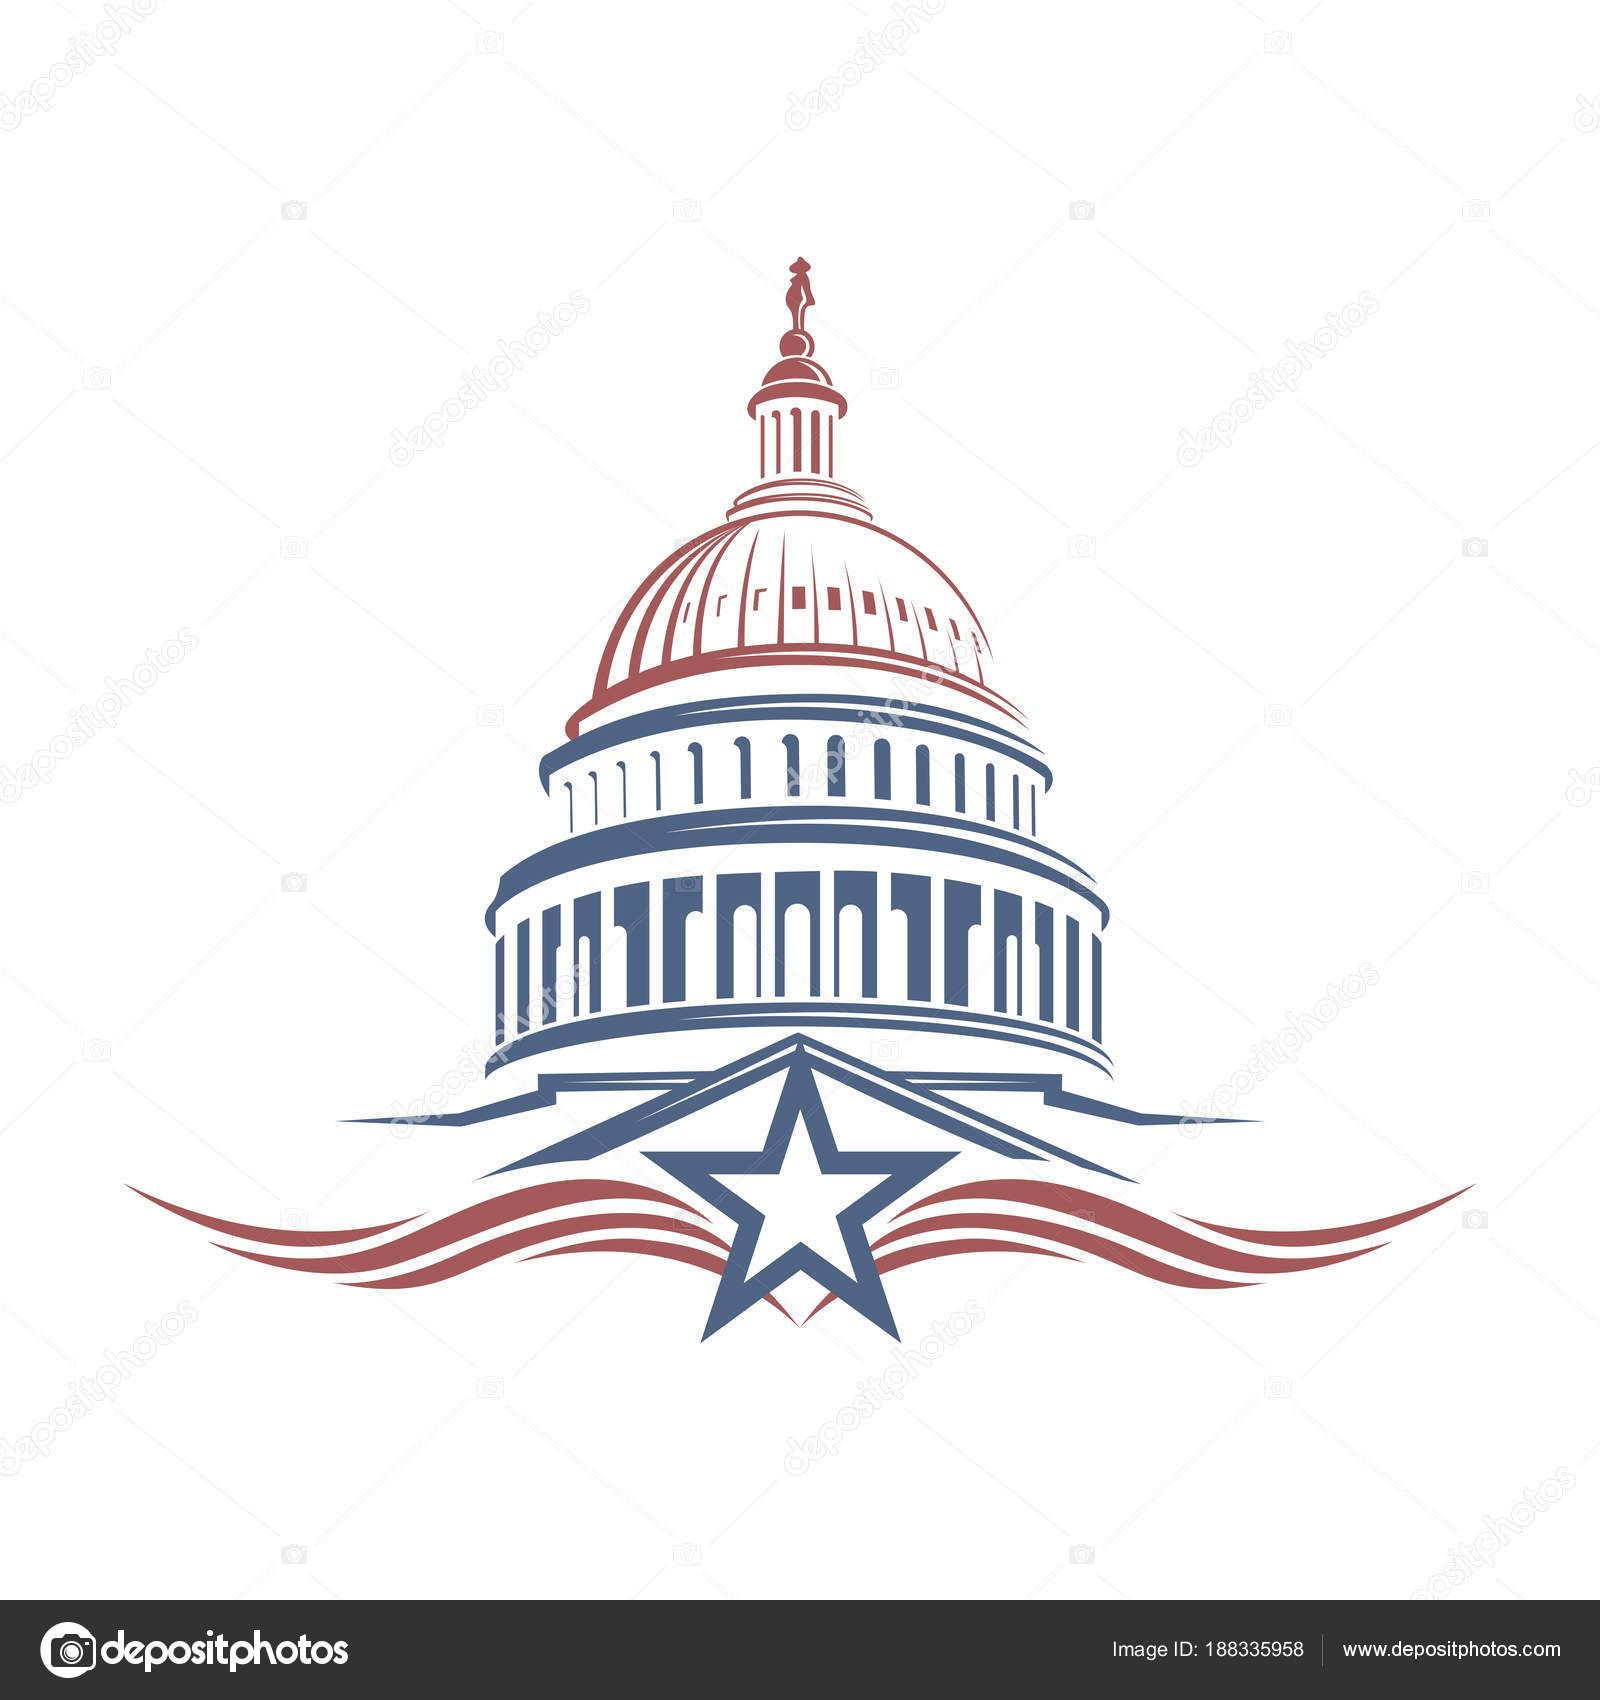 Download royaltyfree United States Capitol building icon